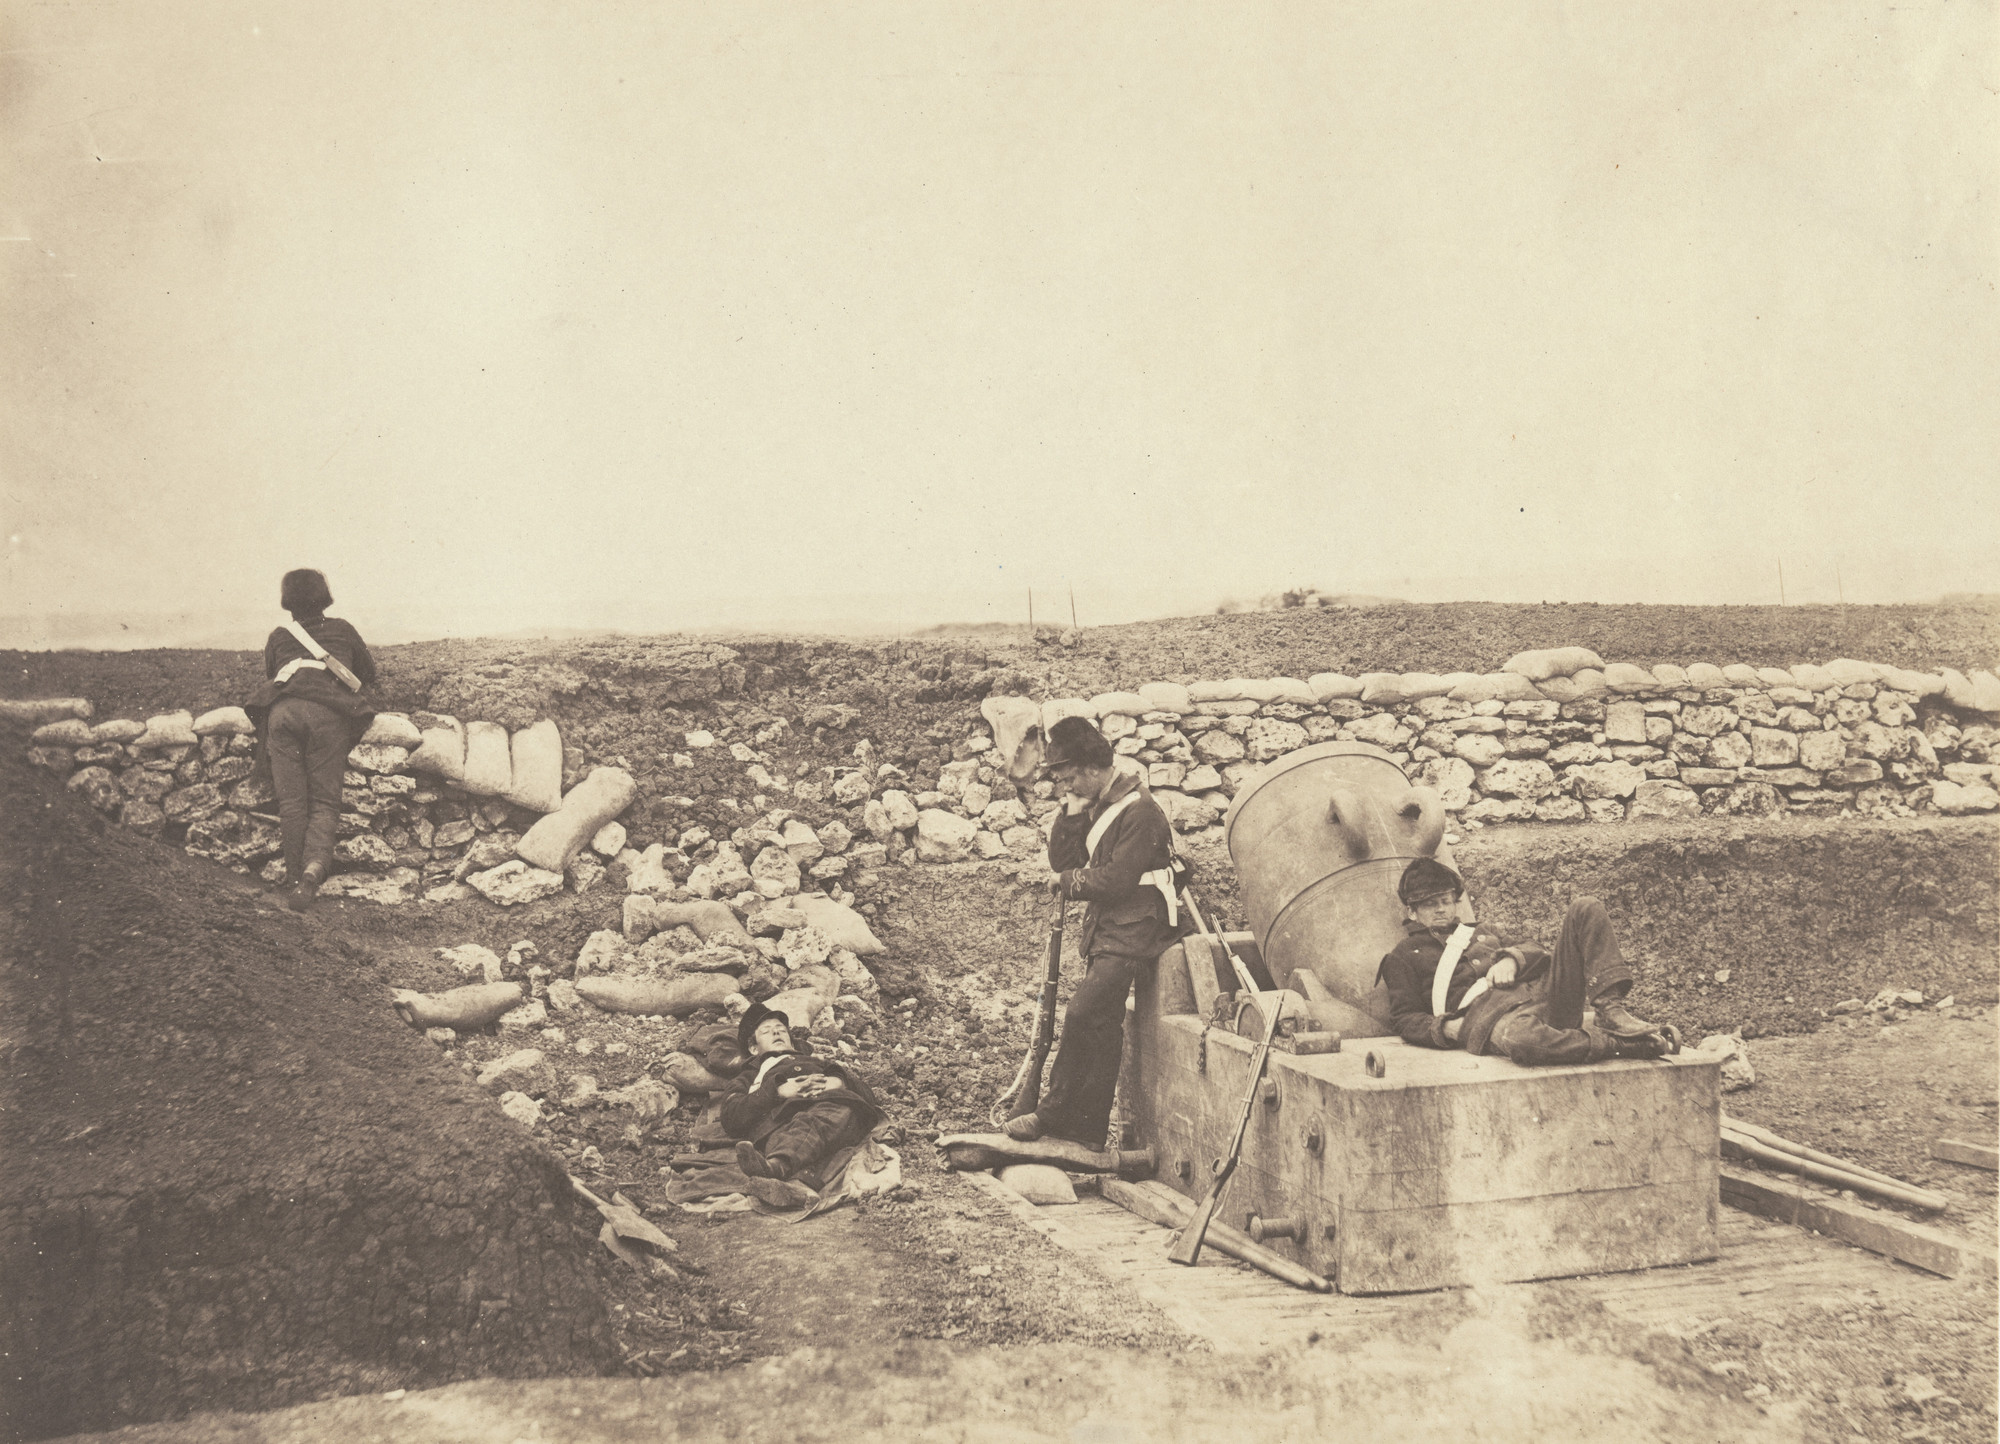 Roger Fenton. A Quiet Day in the Mortar Battery. 1855